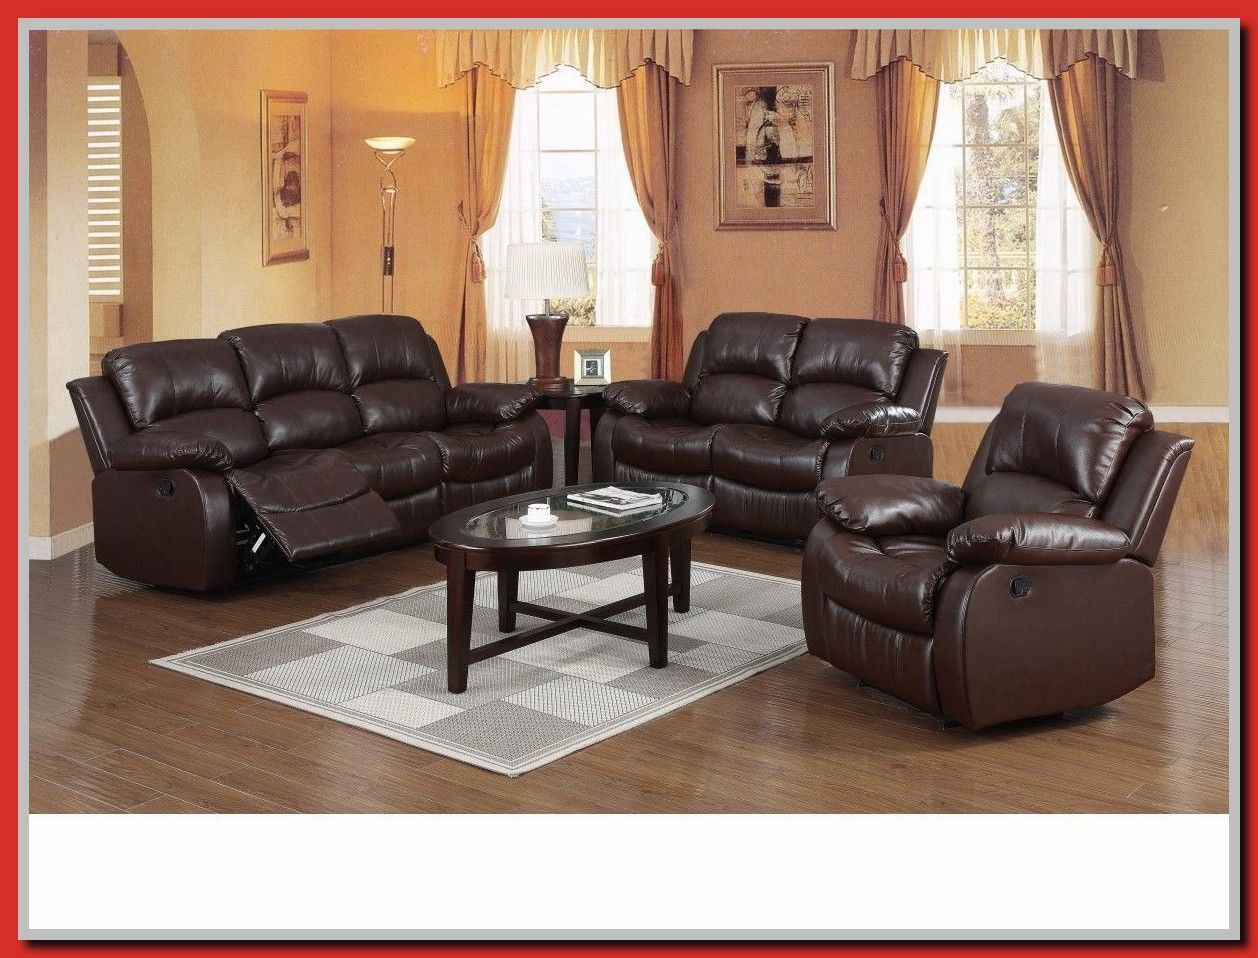 65 Reference Of Recliner Sofa Suite Brown Leather 3 2 Seater In 2020 Contemporary Home Office Furniture Reclining Sofa Sofa Suites